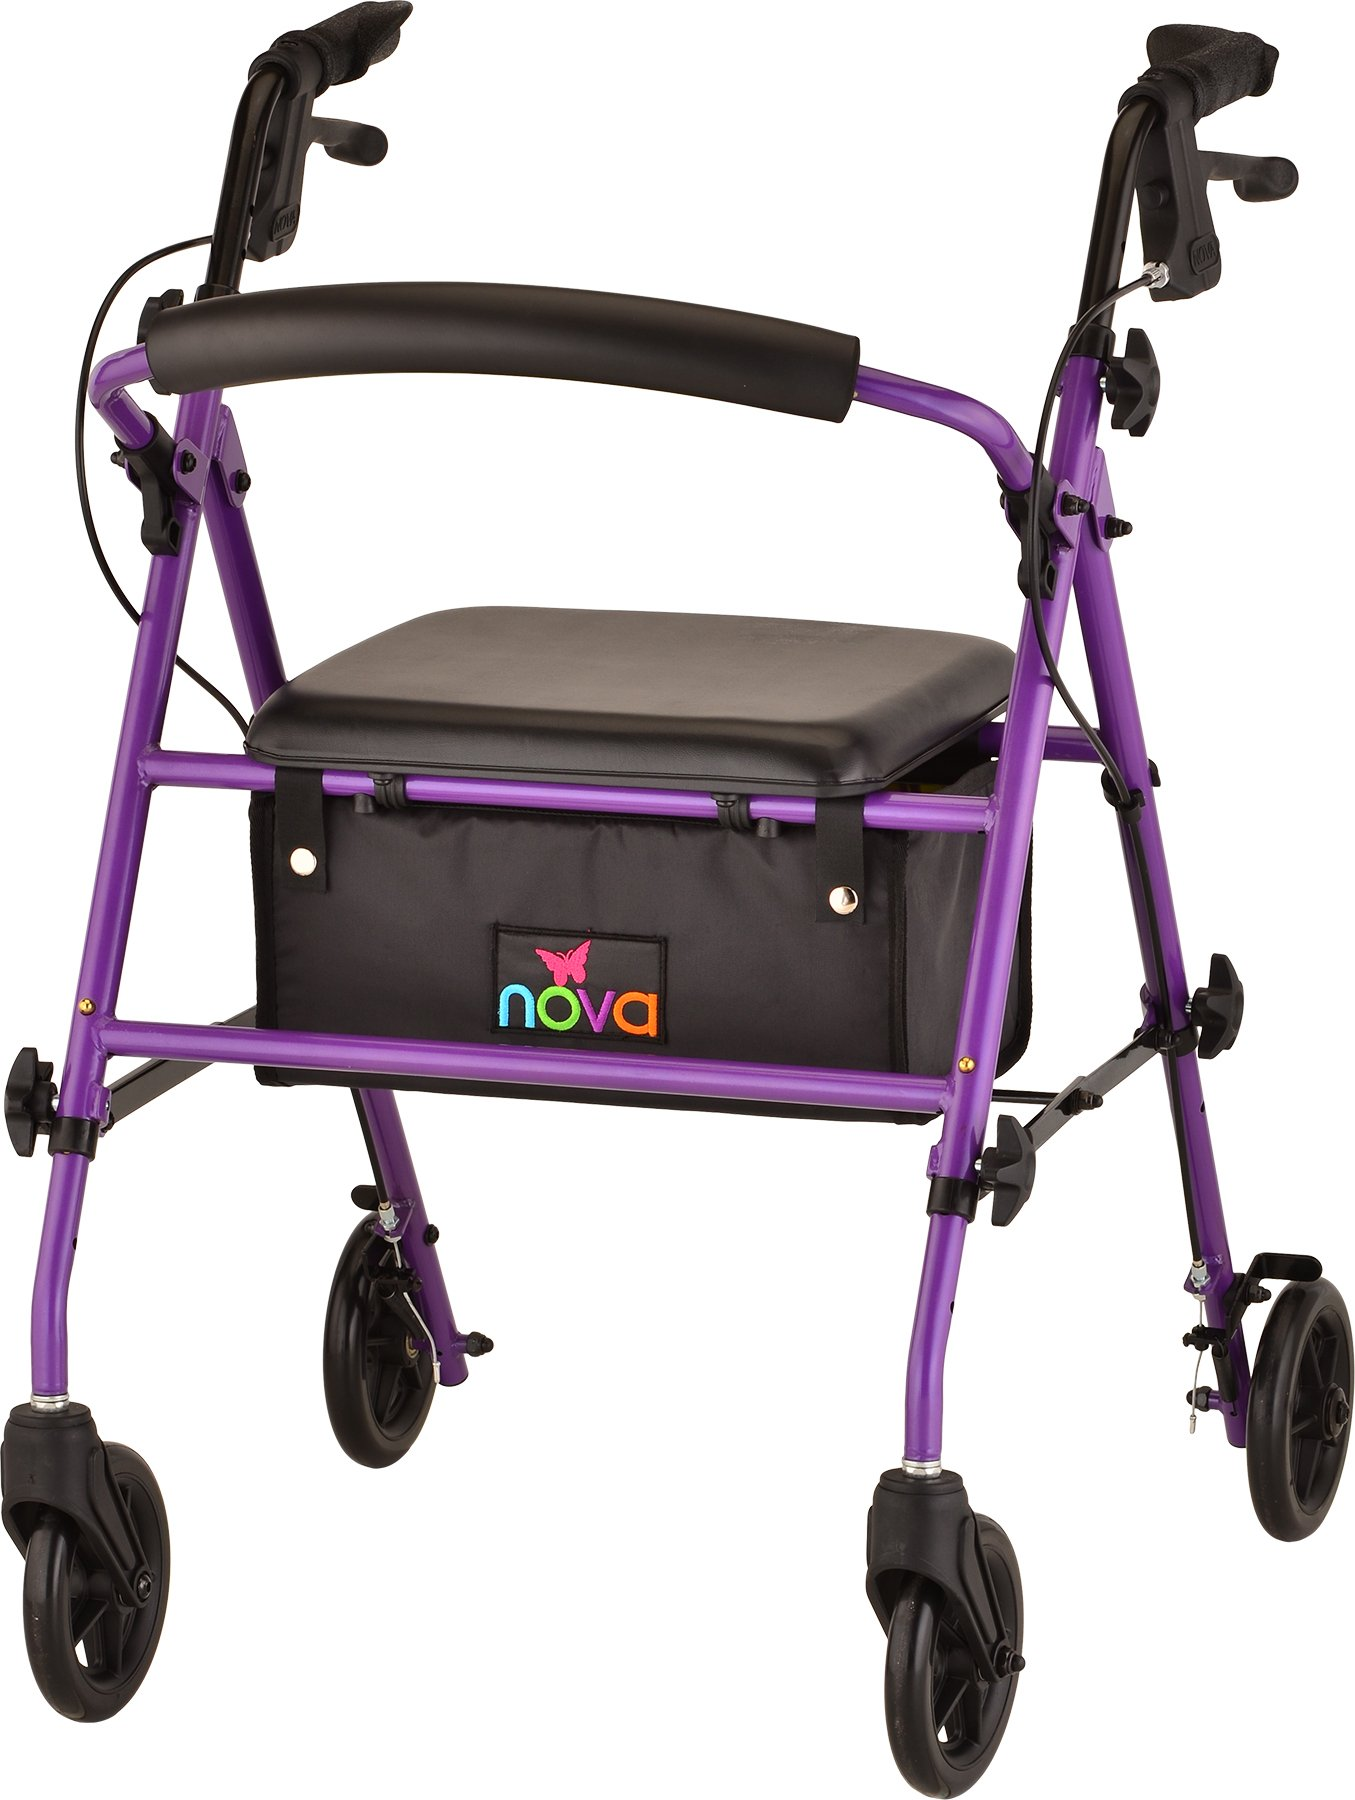 NOVA Journey Steel Rollator Walker, Purple